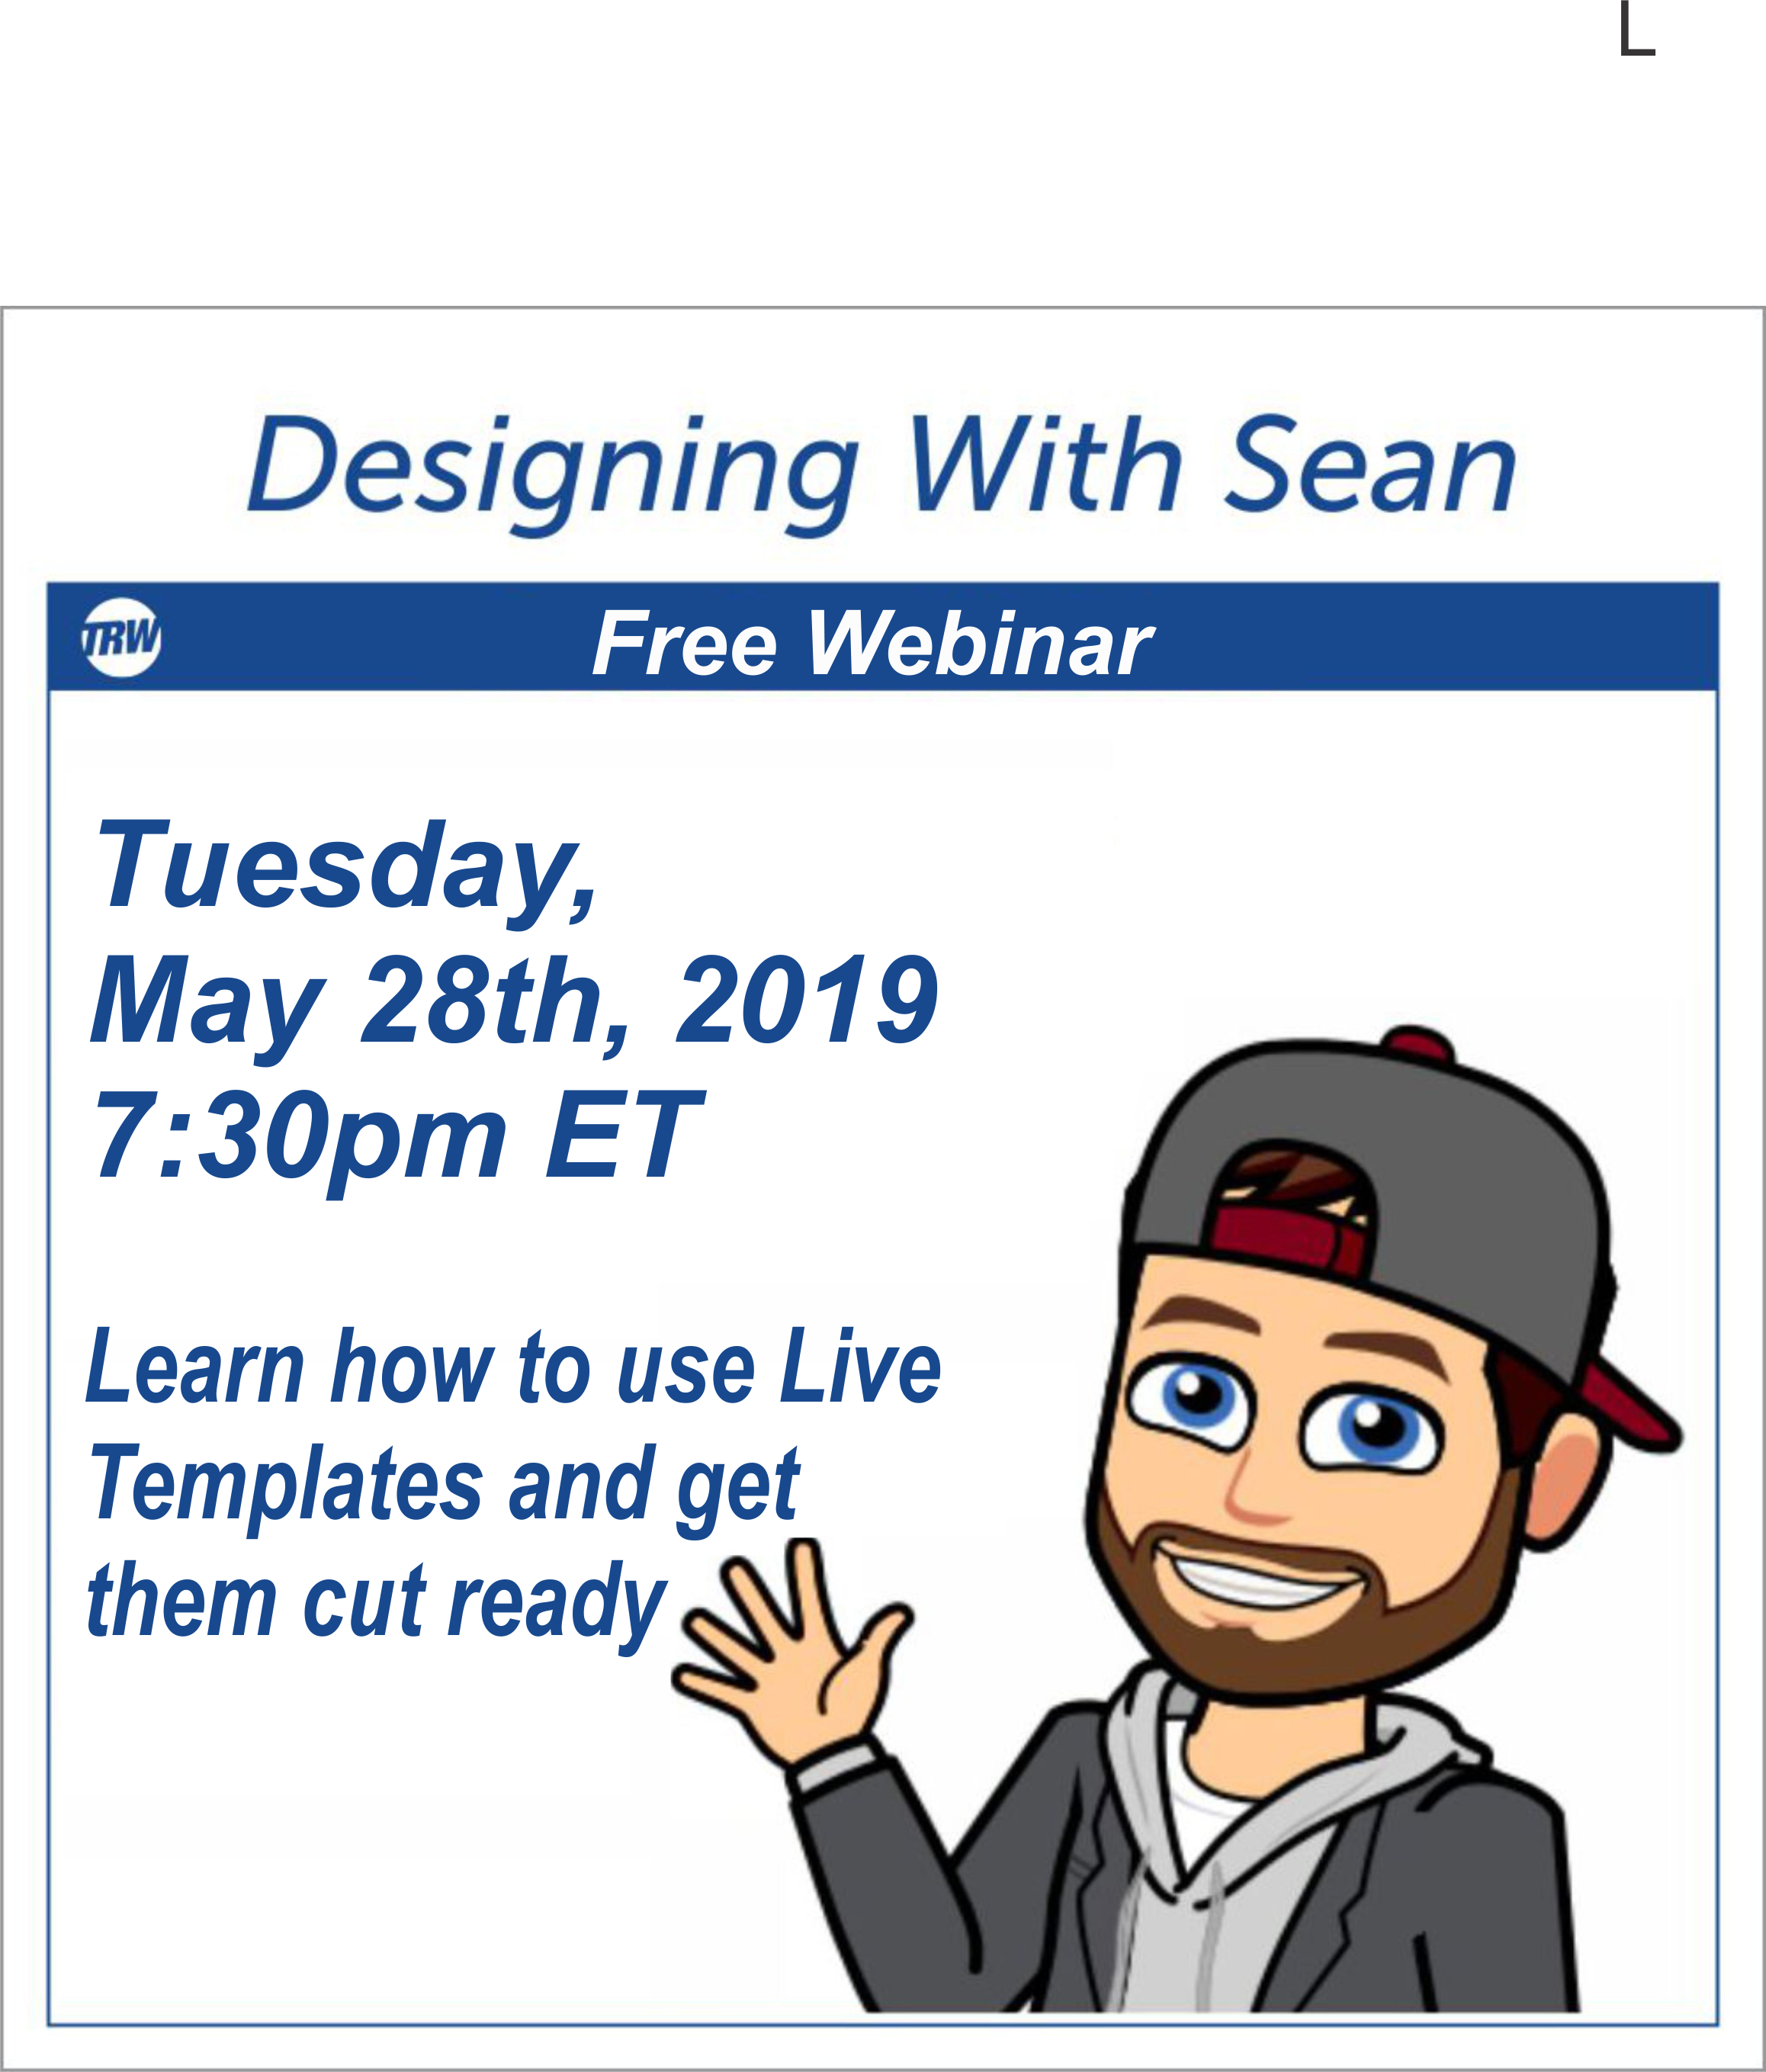 Designing with Sean - May 28th, 2019  Learn how to use Live Templates